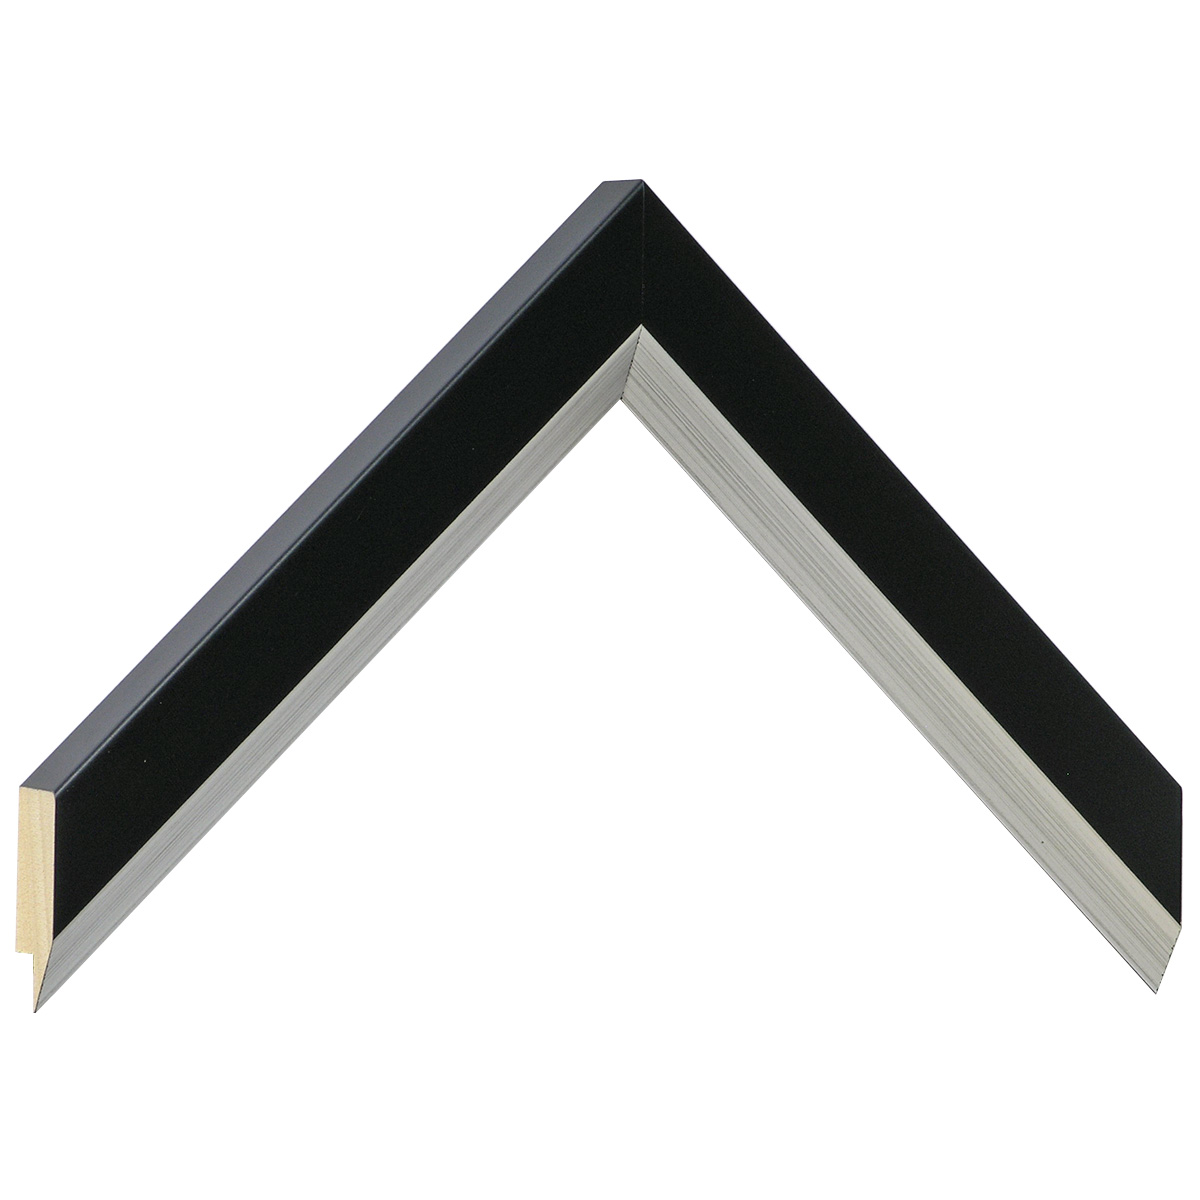 Moulding ayous, width 28mm height 20 - Black